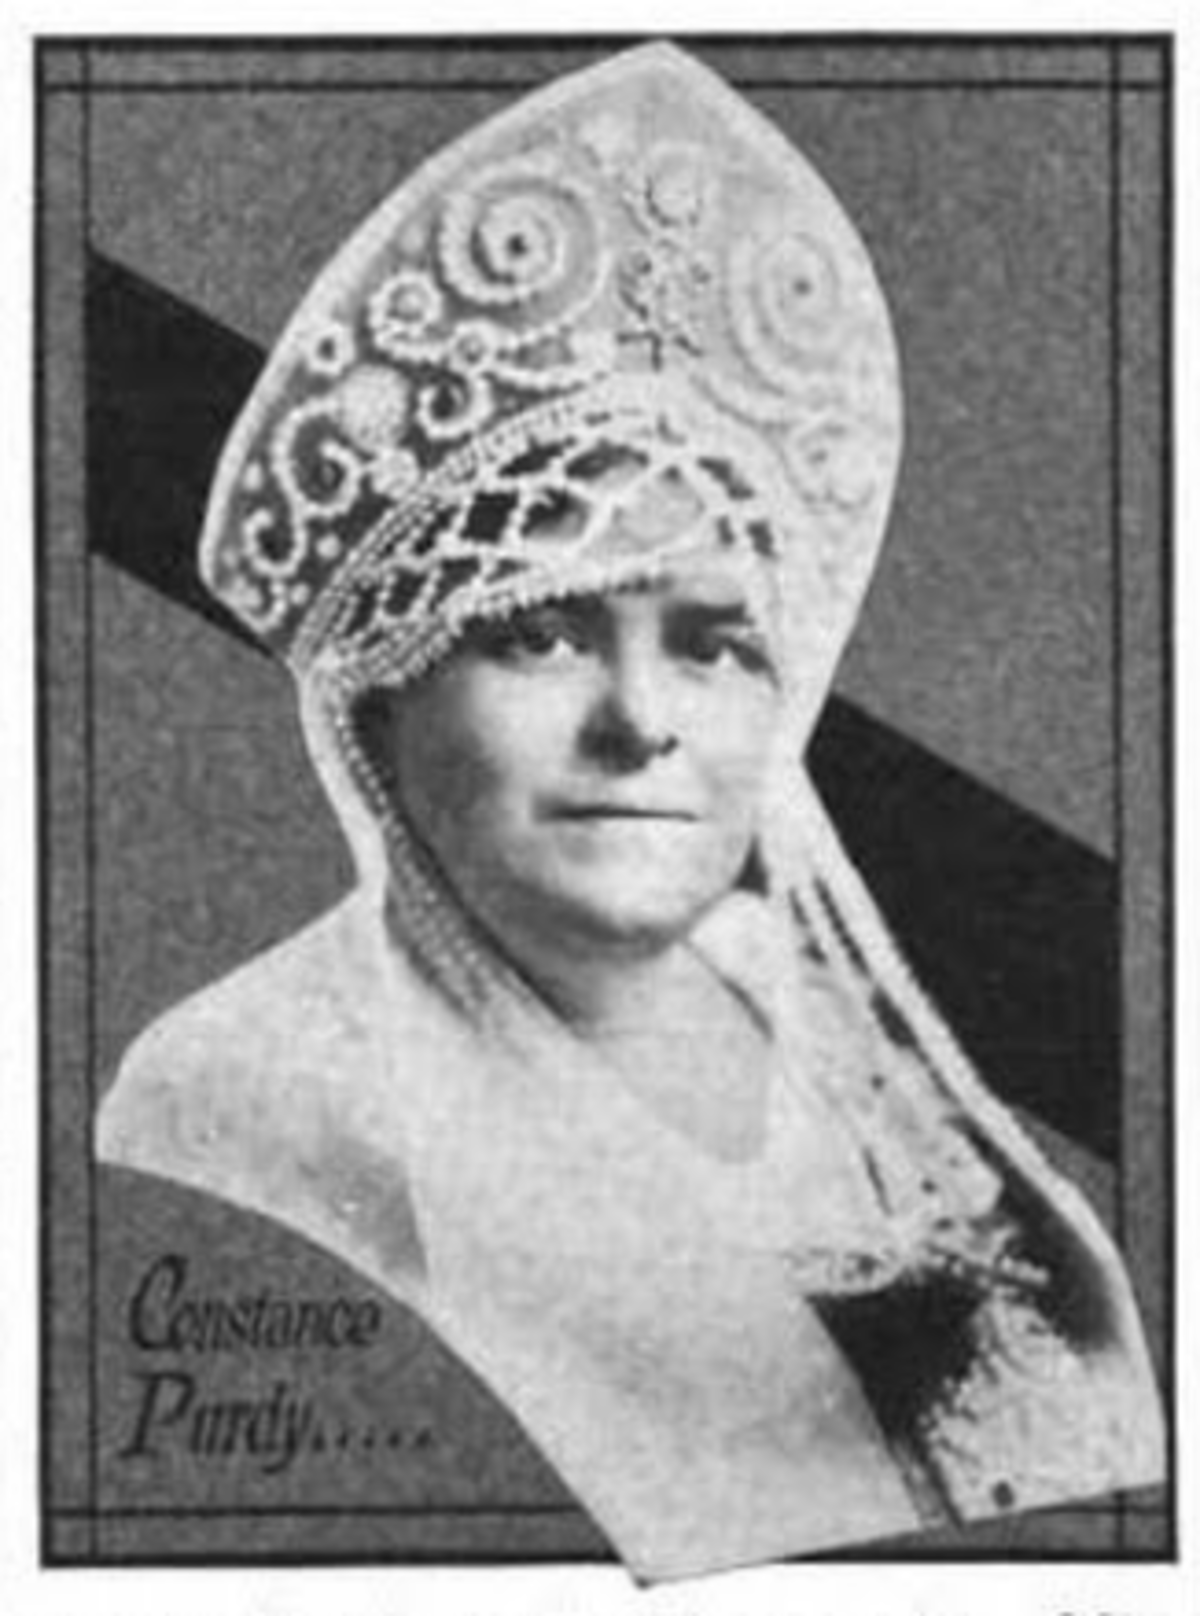 Constance Purdy